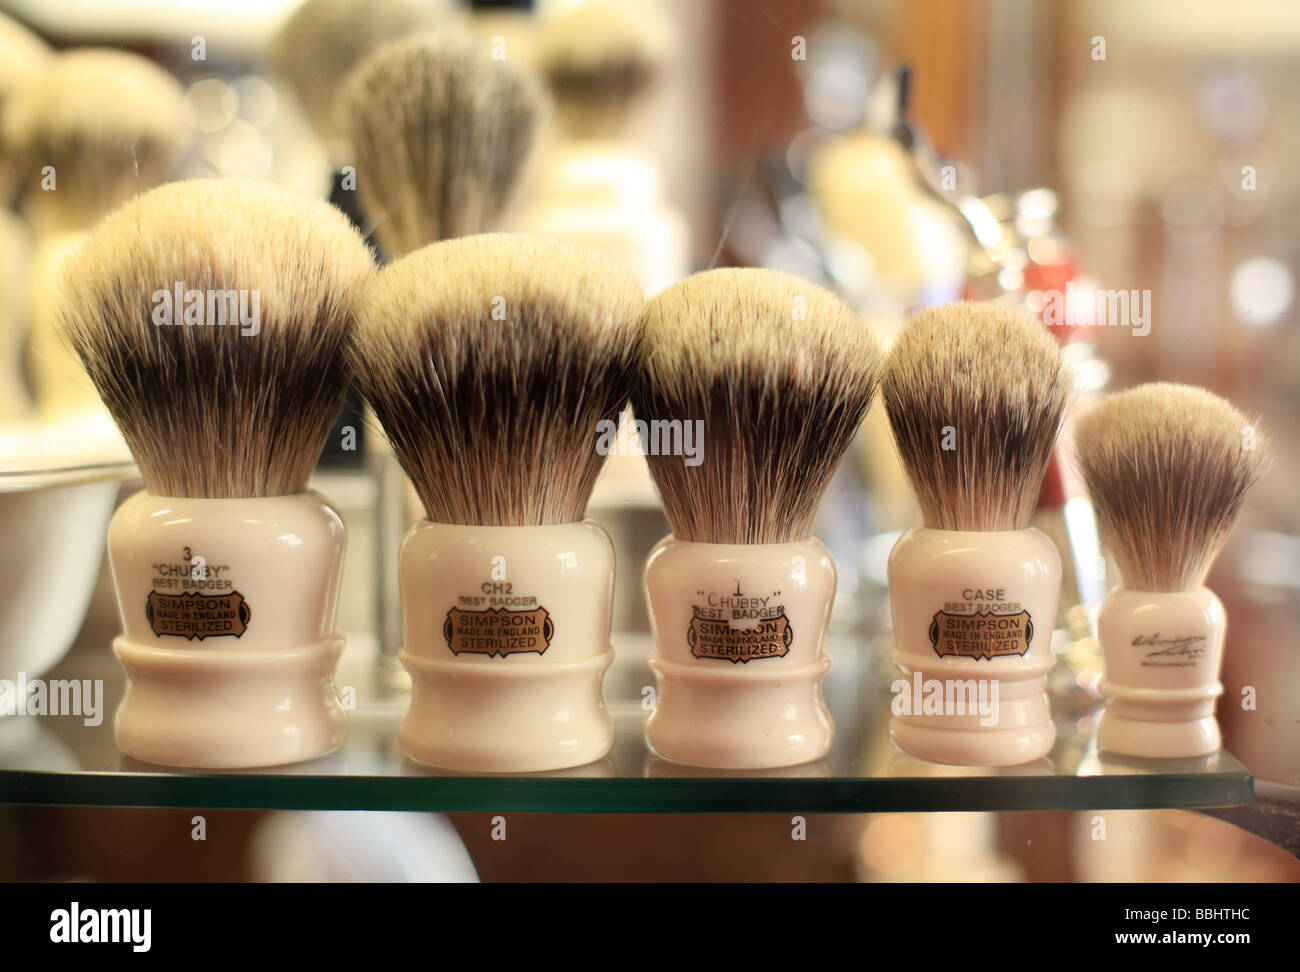 Badger shaving brushes on display in D R Harris pharmacy in St James street London - Stock Image